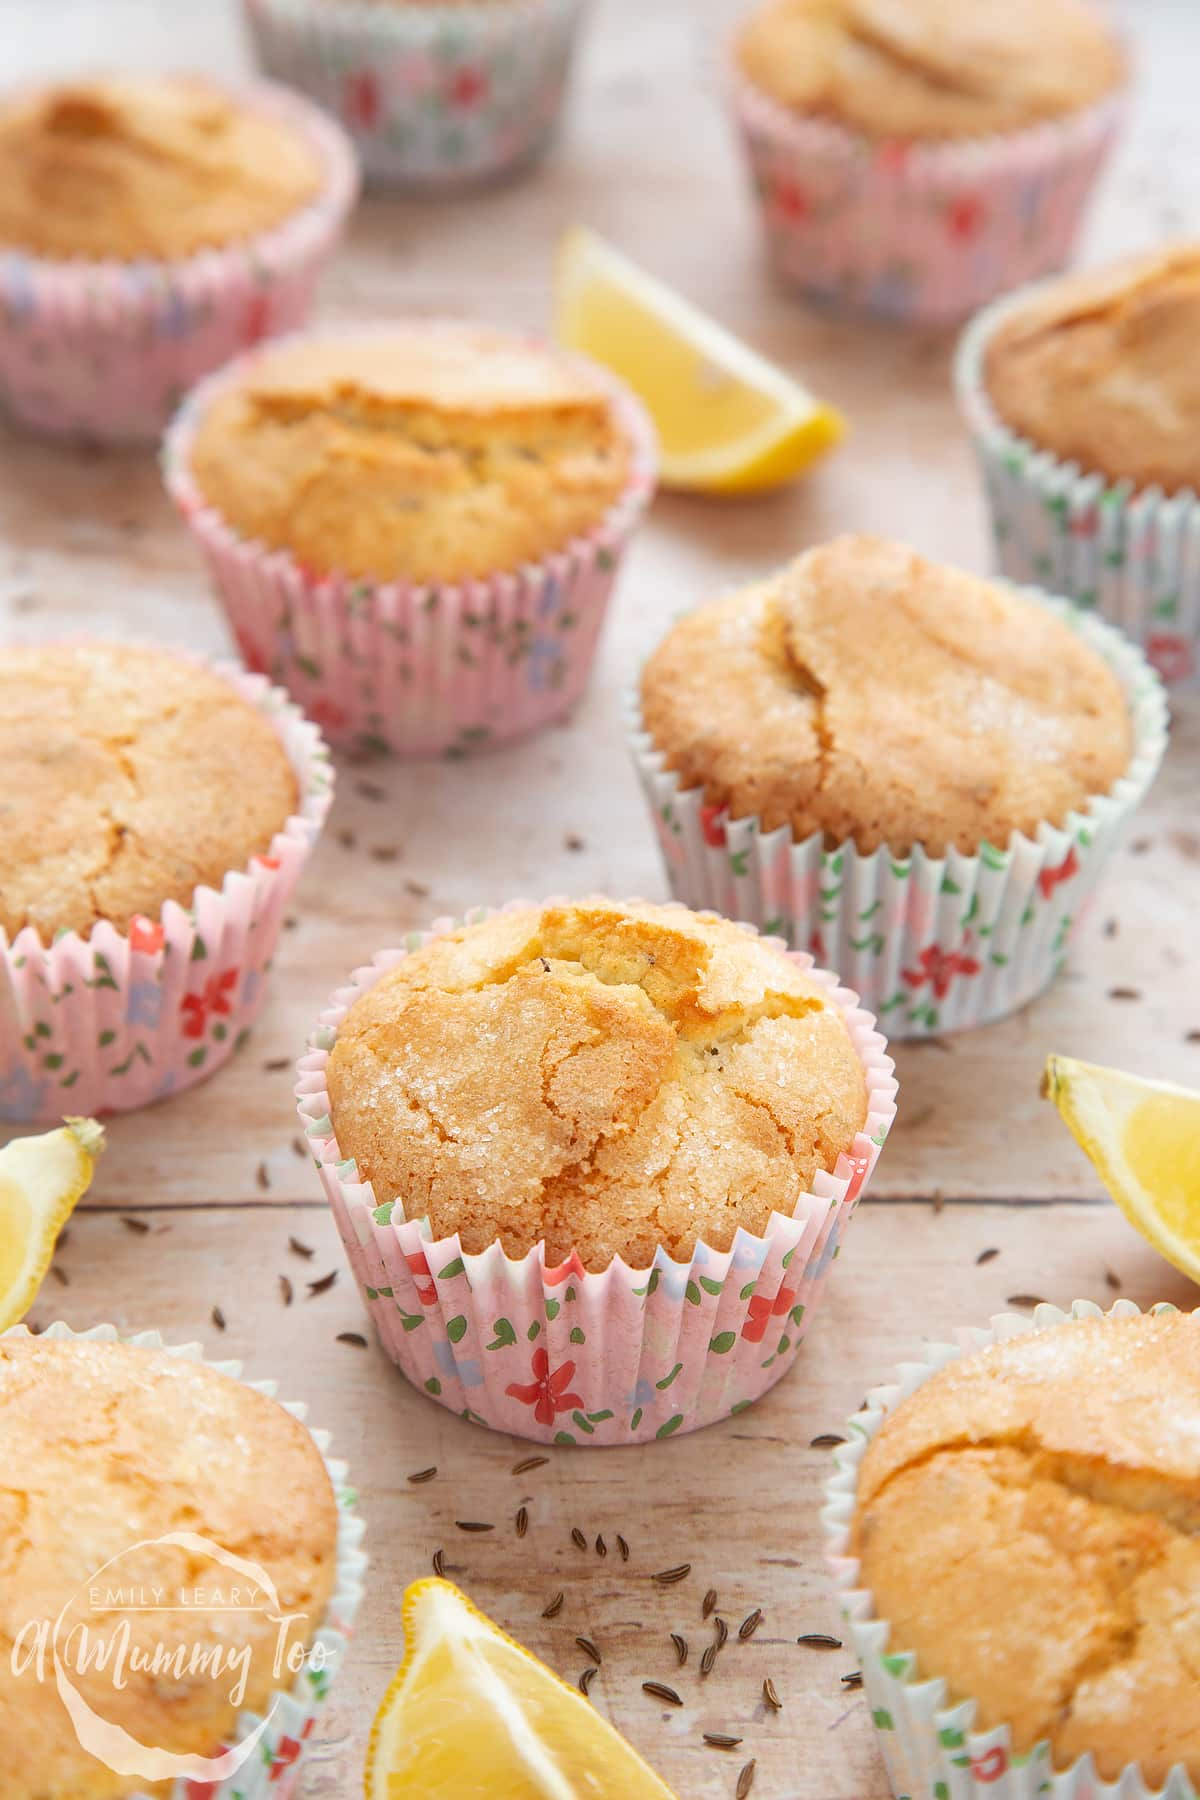 Front angle shot of caraway seed muffin with lemons in the side and a mummy too logo in the lower-left corner